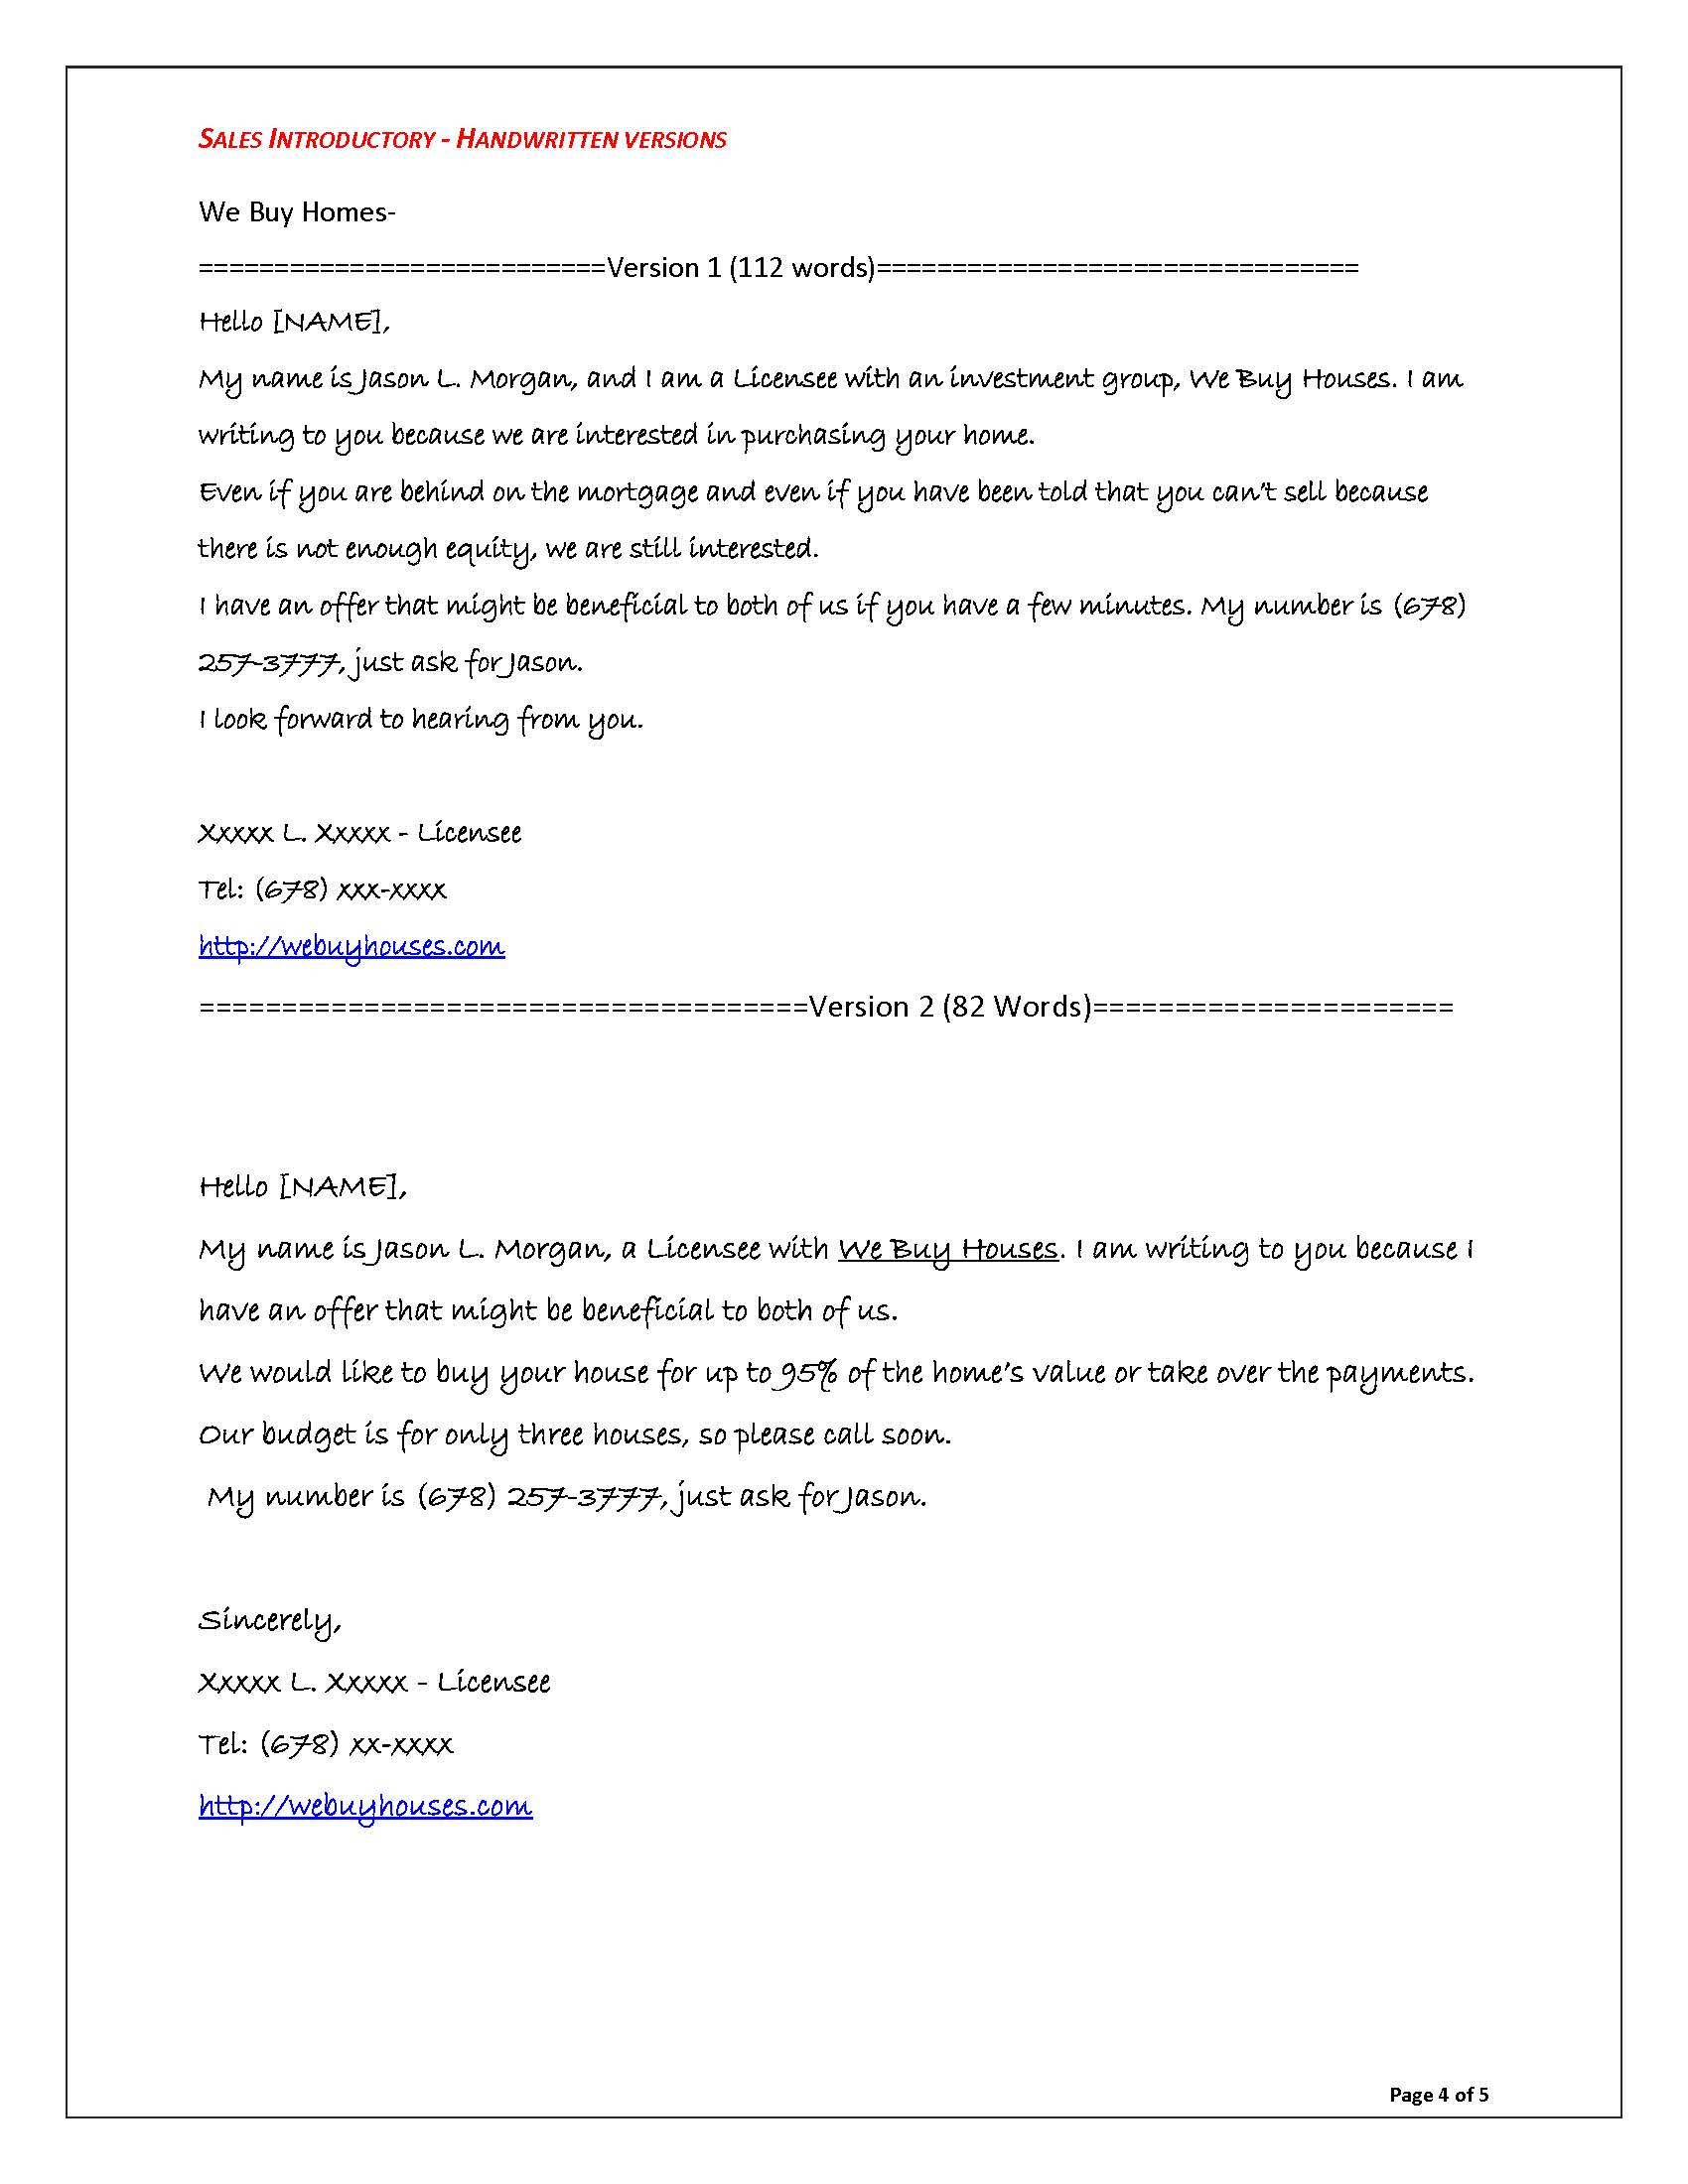 Sales Letter Series - Real Estate Co._Page_4